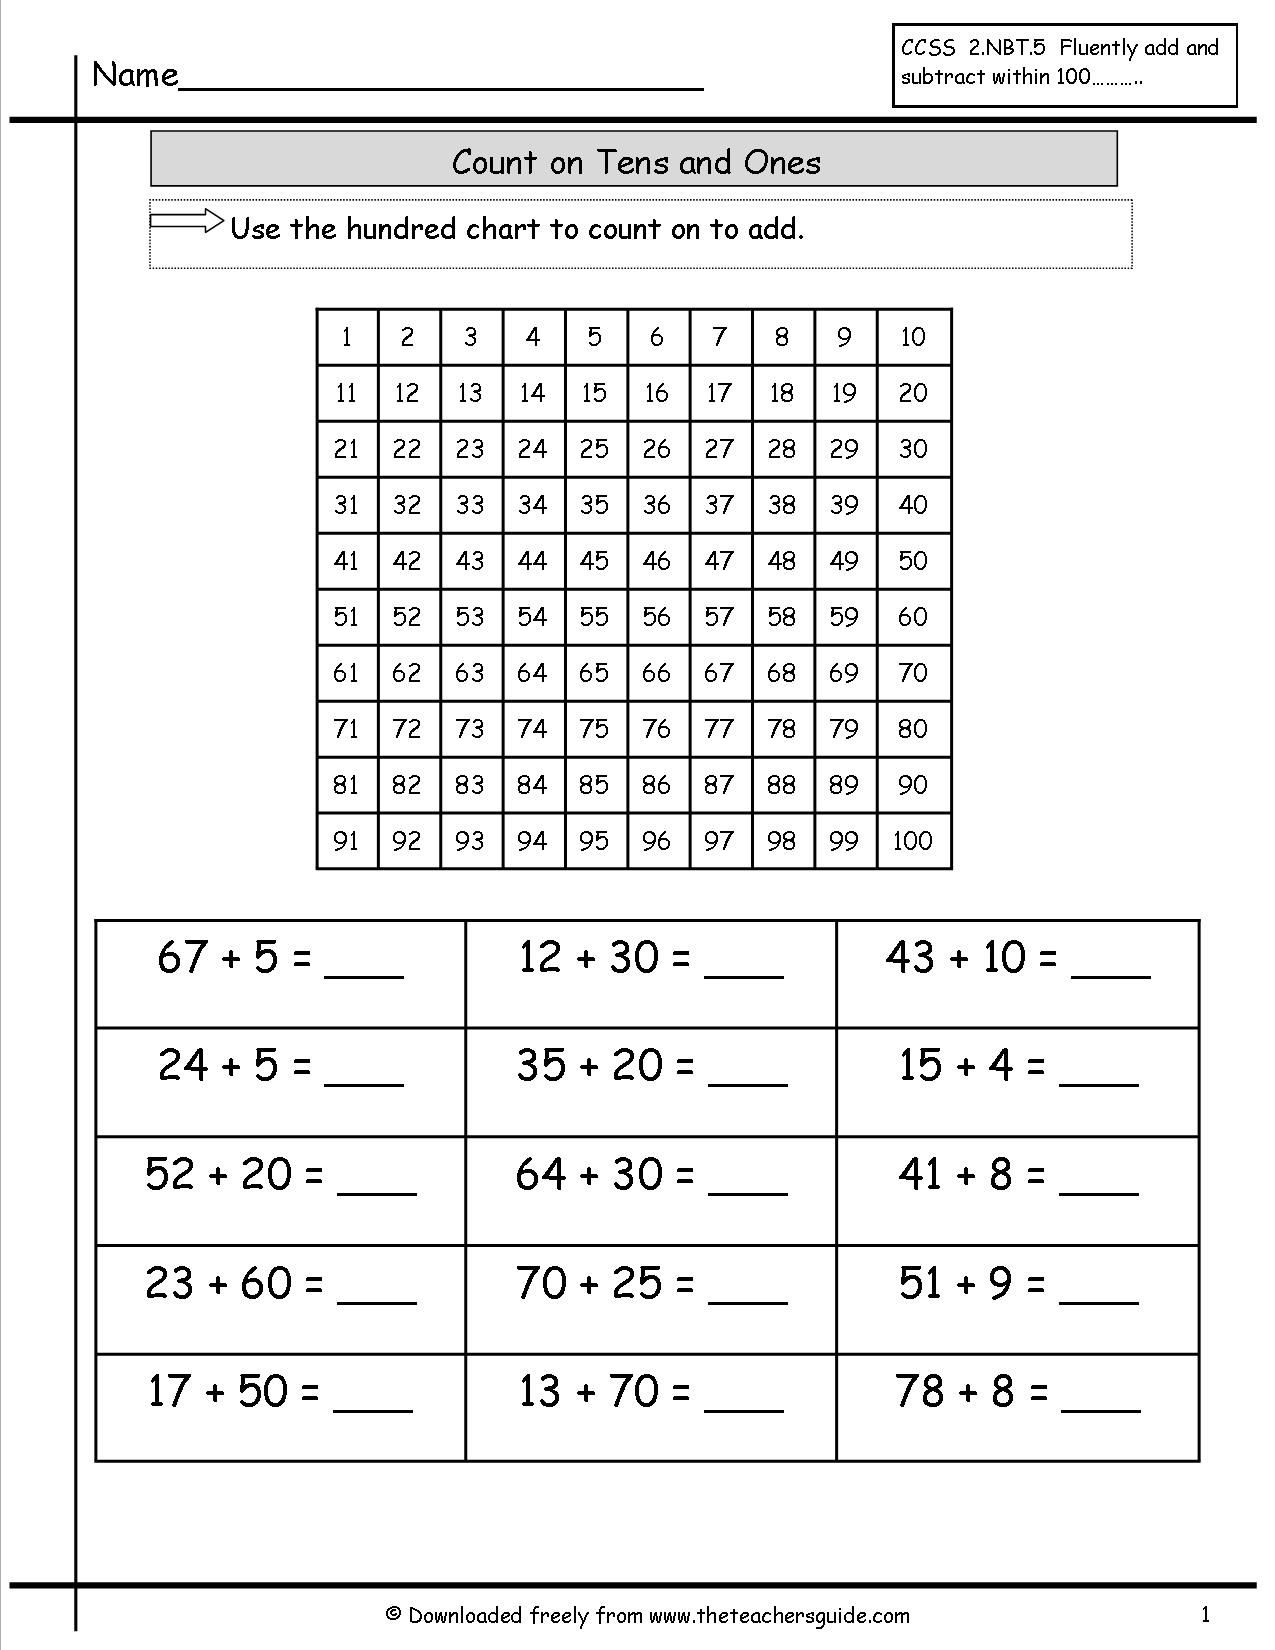 14 Best Counting To 10 Worksheets Images On Best